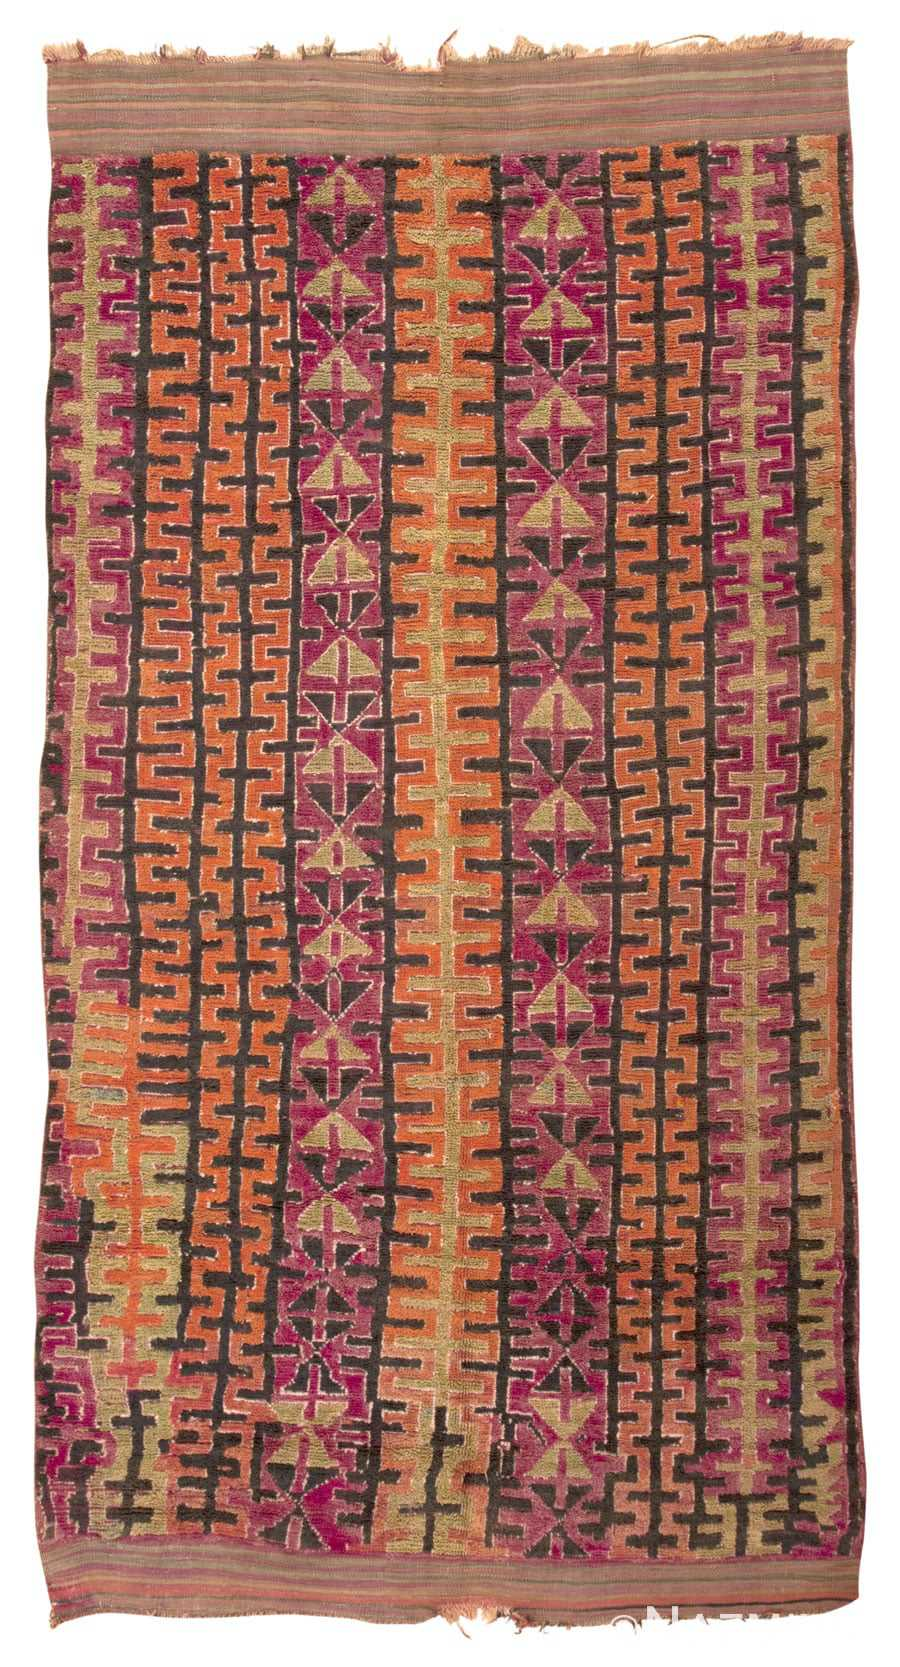 Vintage Purple Moroccan Rug 45201 from Nazmiyal Antique Rugs in NYC